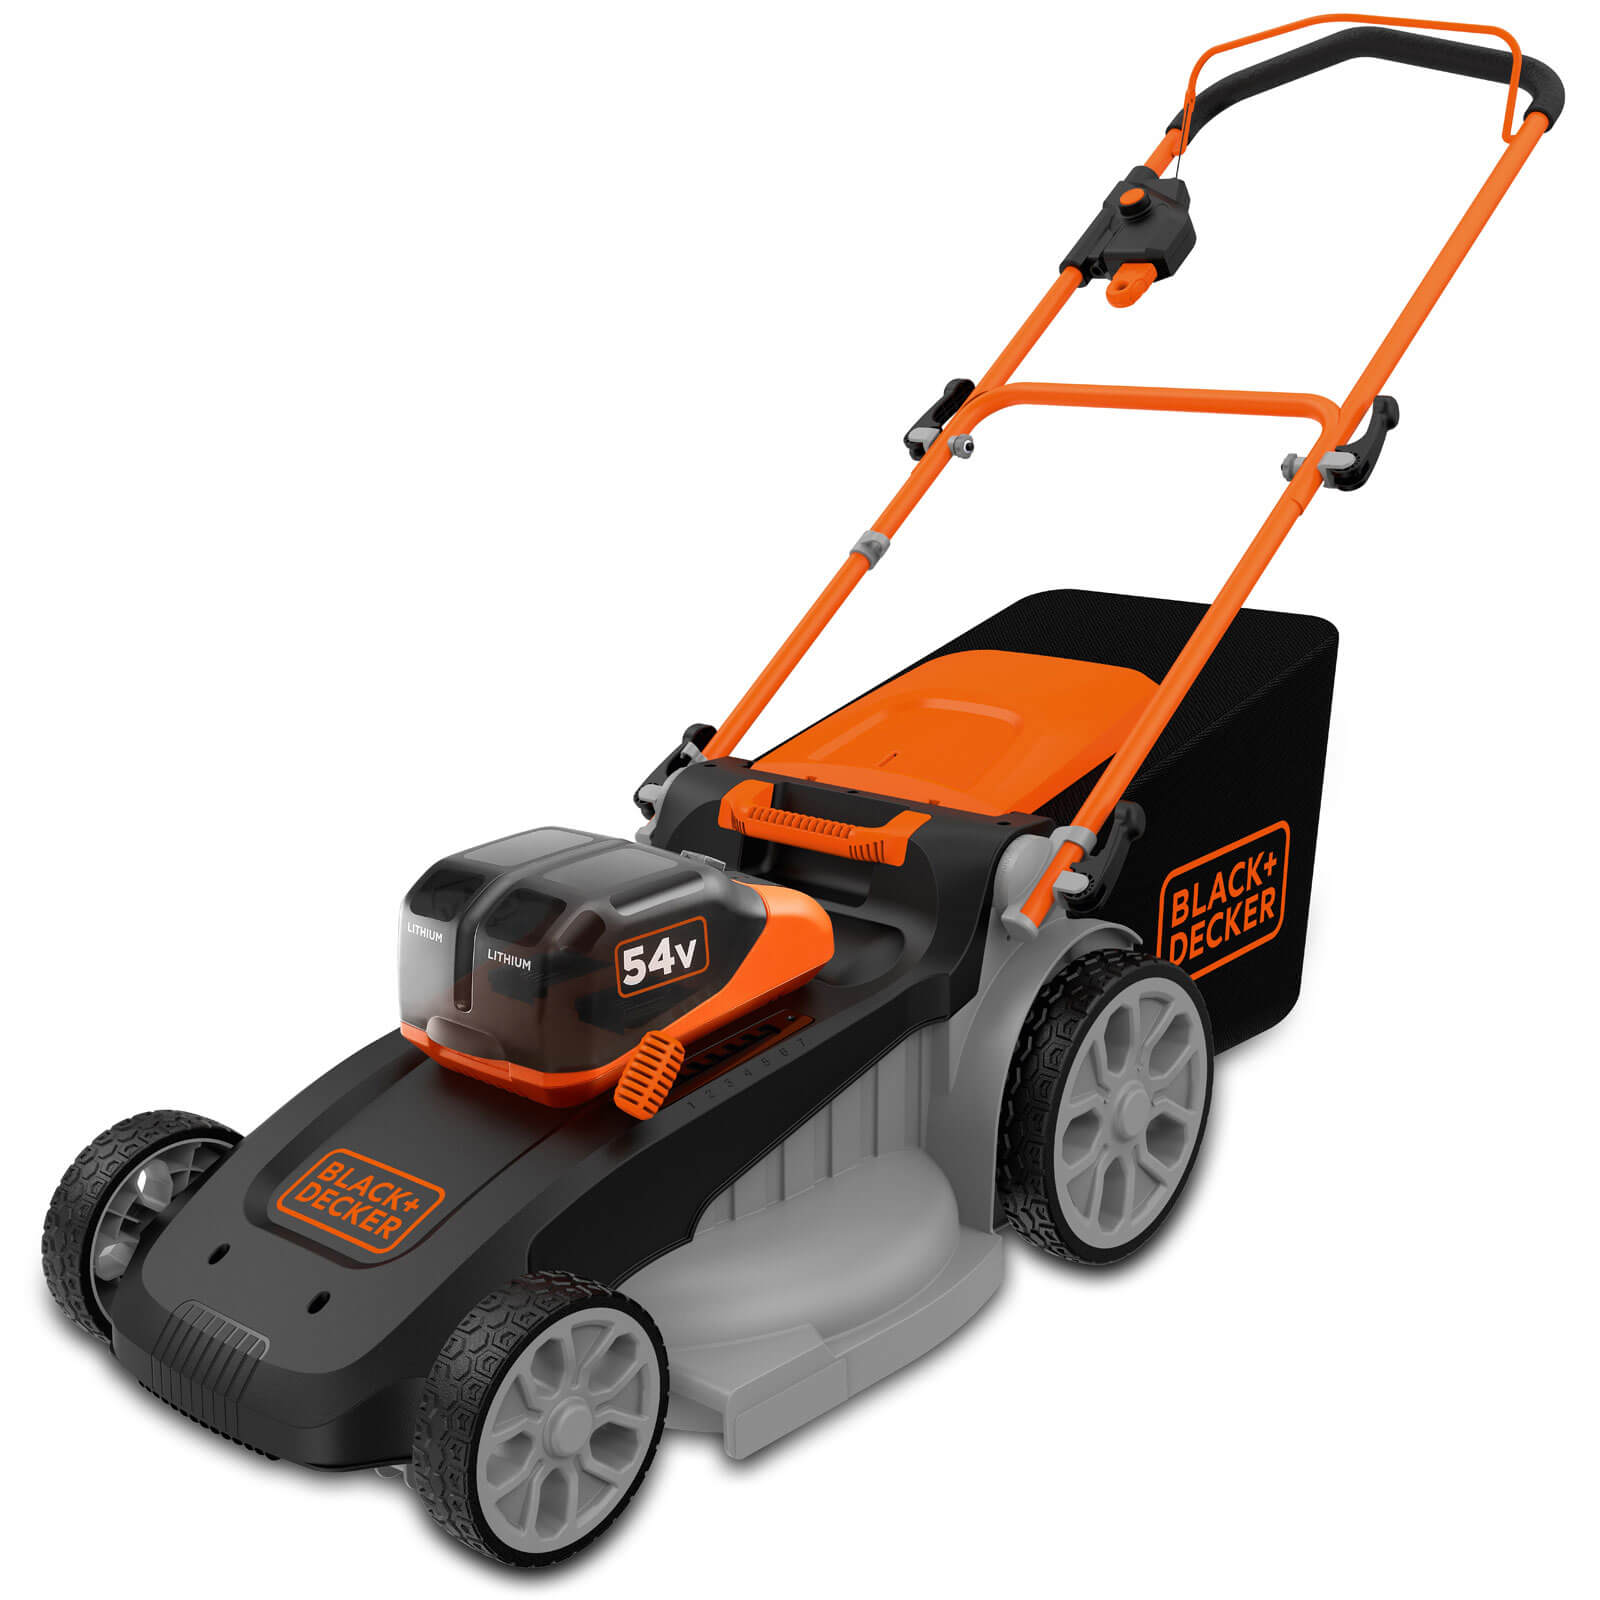 Image of Black and Decker CLM5448PCB 54v Cordless Dualvolt Rotary Lawnmower 480mm 2 x 2.5ah Li-ion Charger